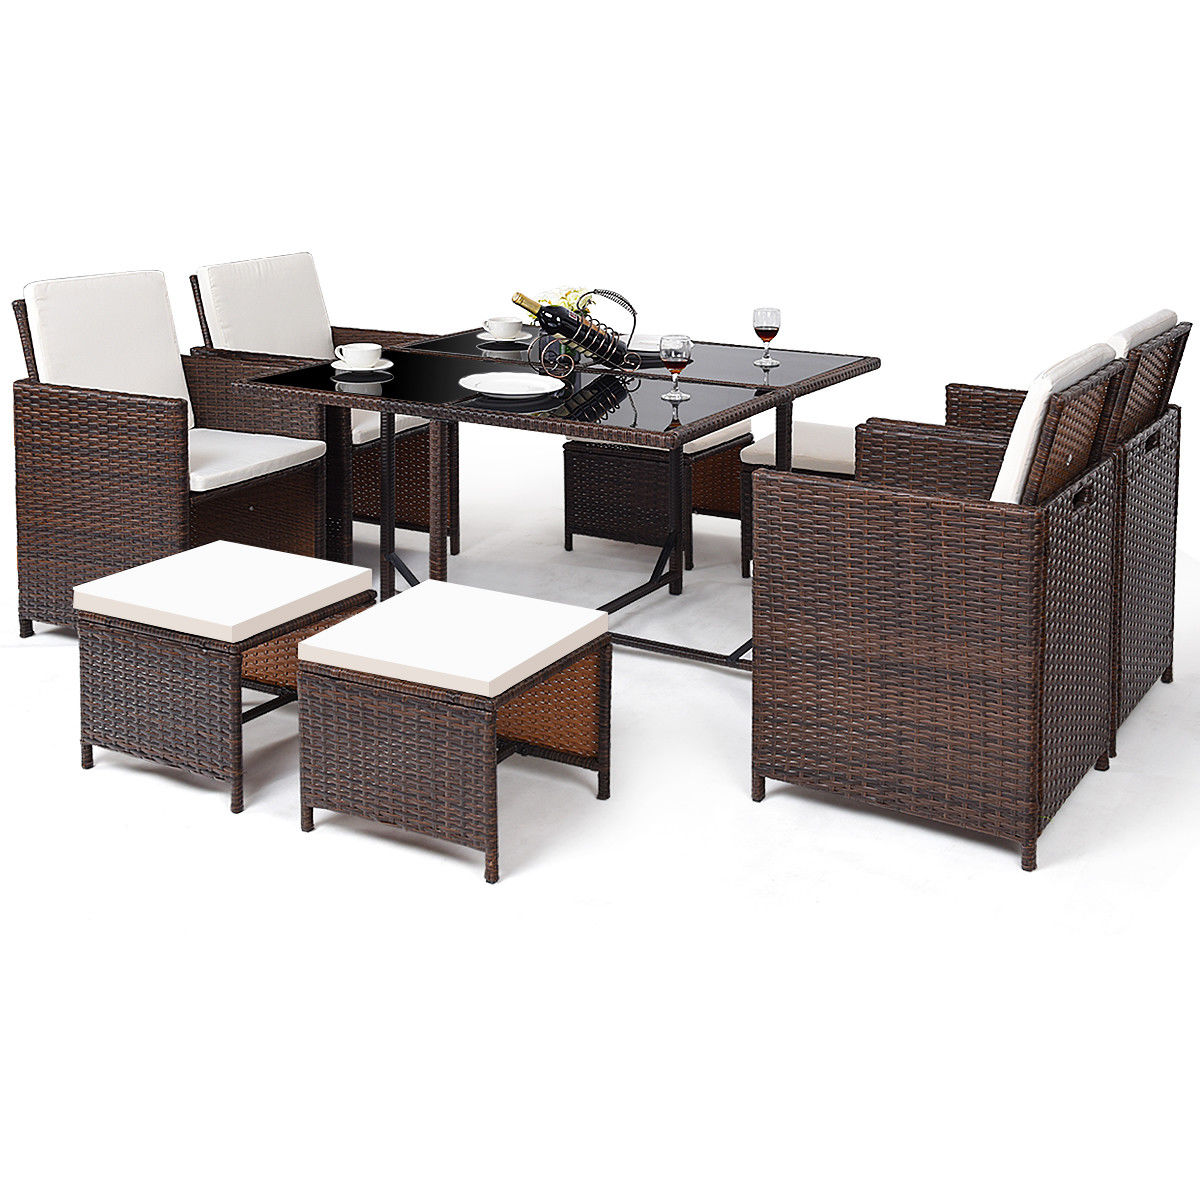 Costway 9 PCS Outdoor Patio Dining Room Set Rattan Wicker Furniture Garden Cushioned Cover by Costway